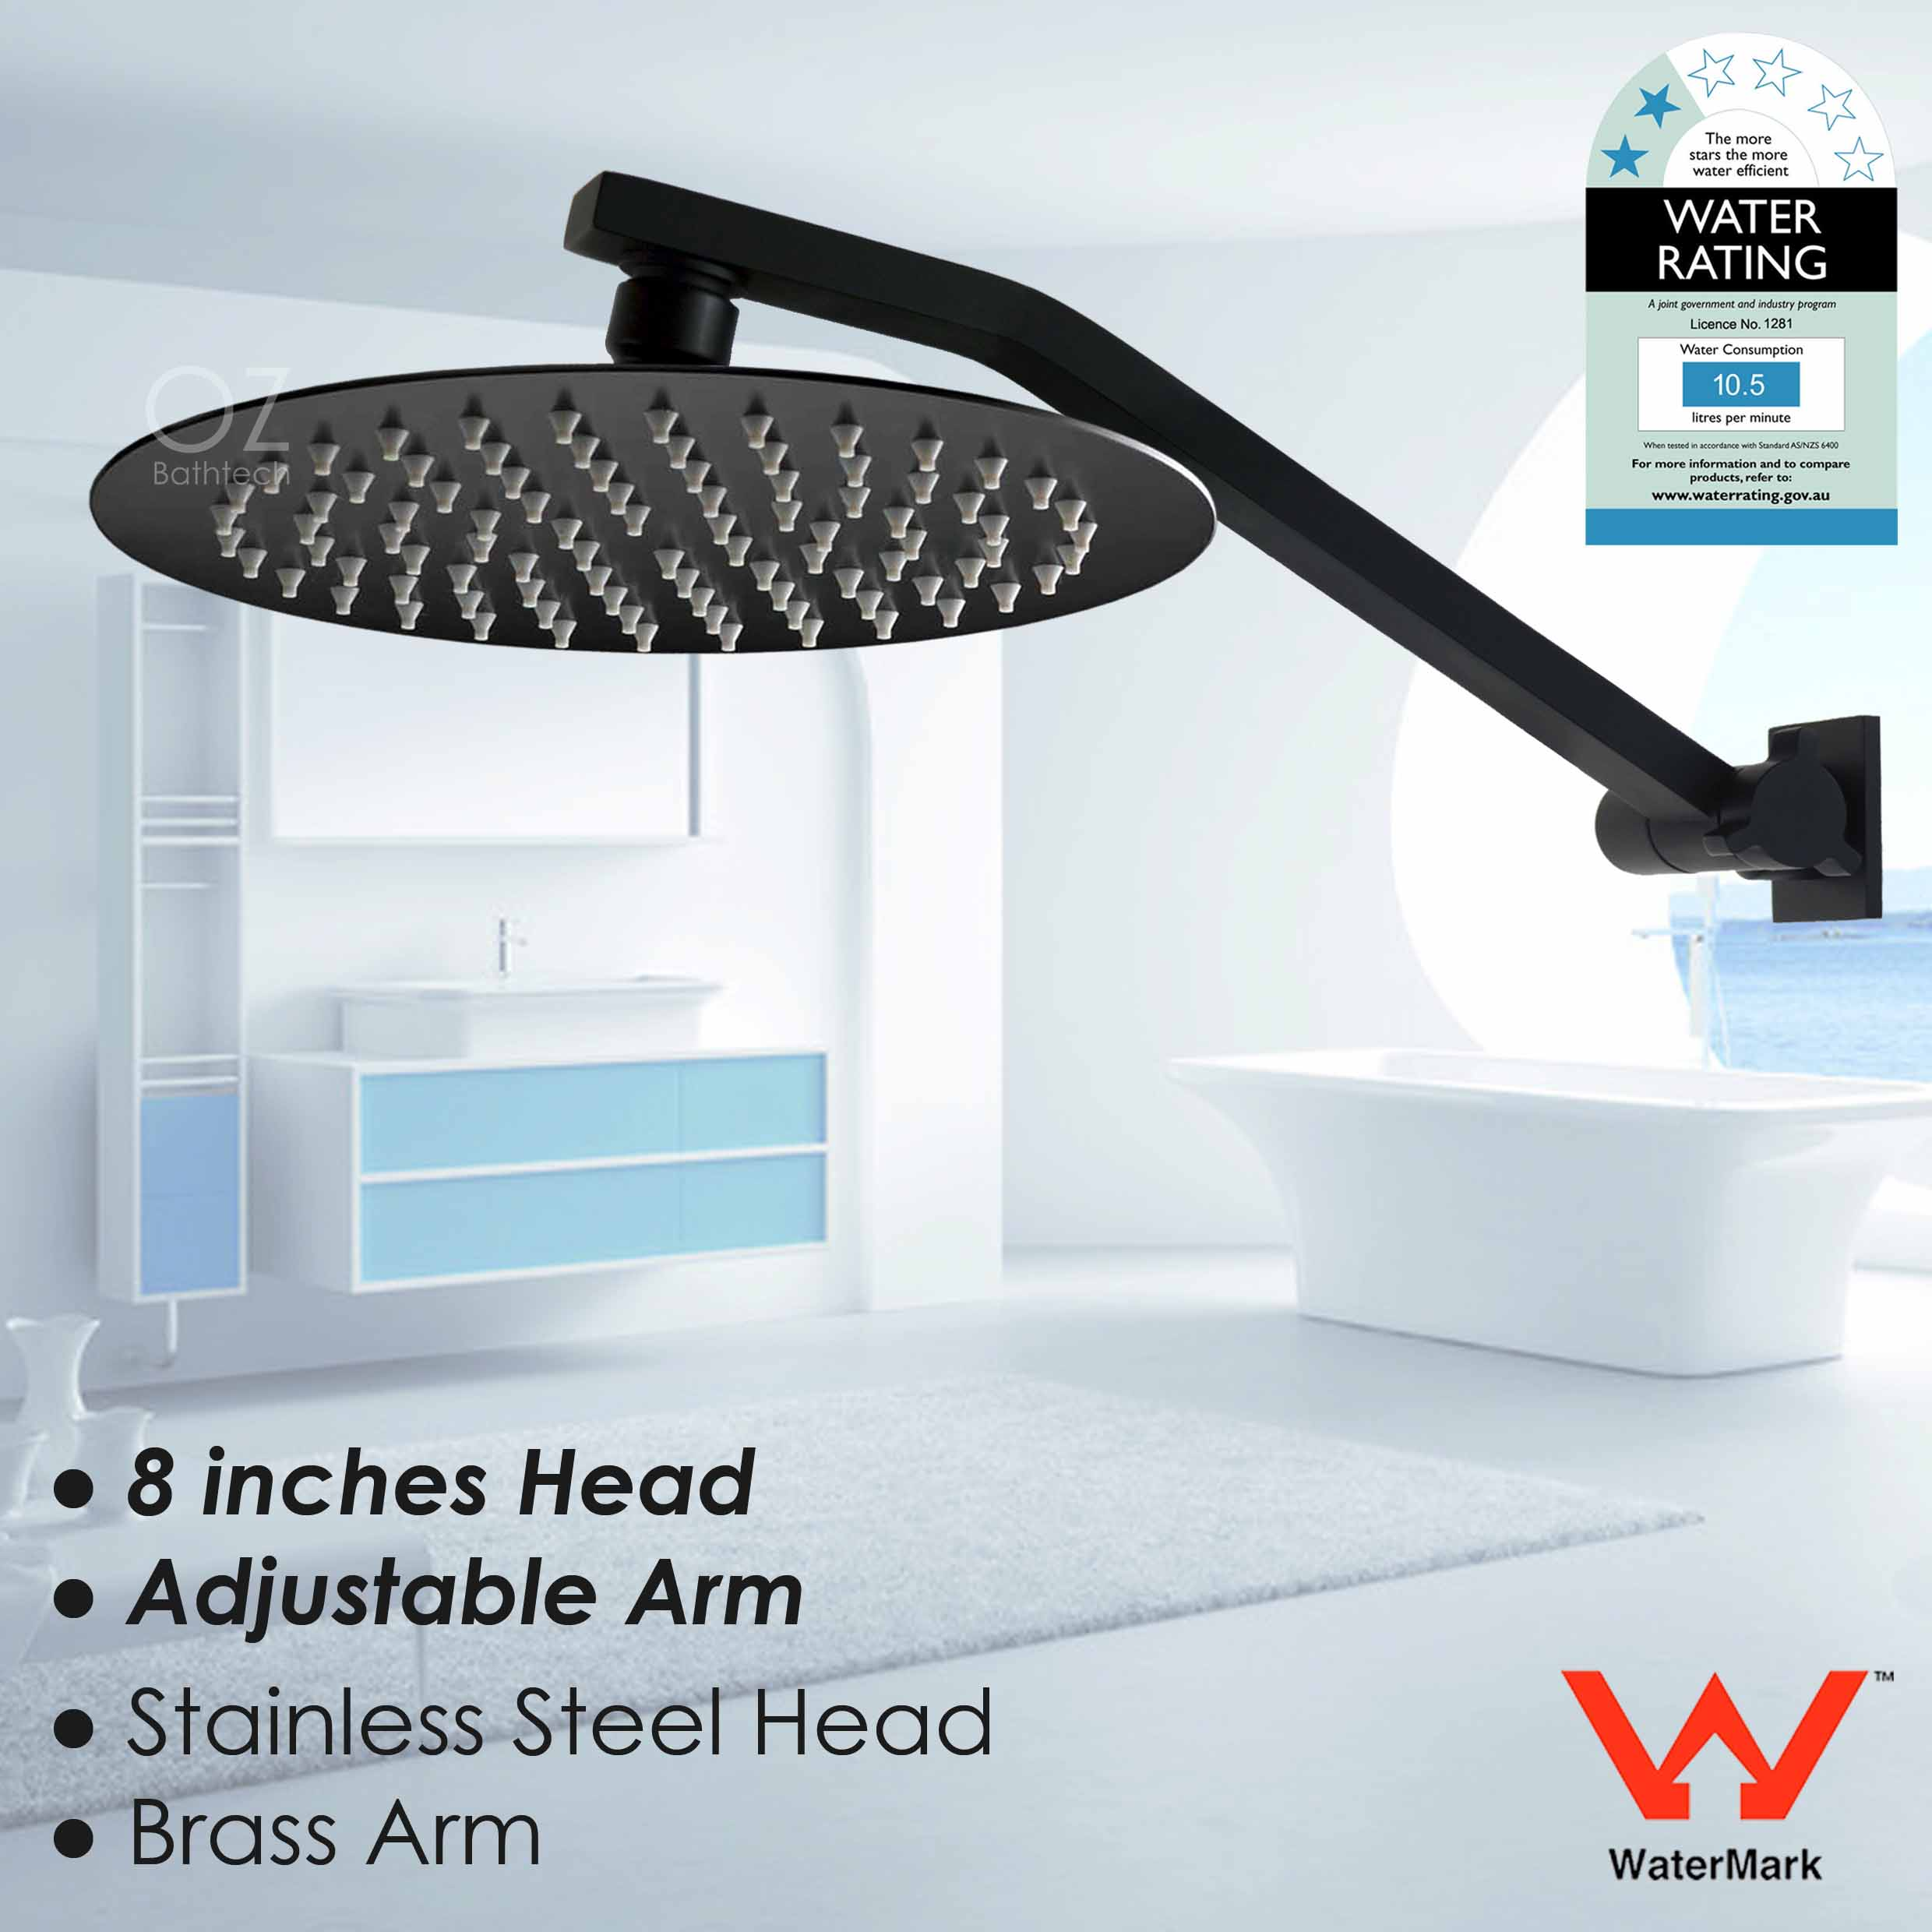 Details About Wels 8 Round Rain Shower Head Up Down Adjustable Swivel Wall Arm Set Matt Black